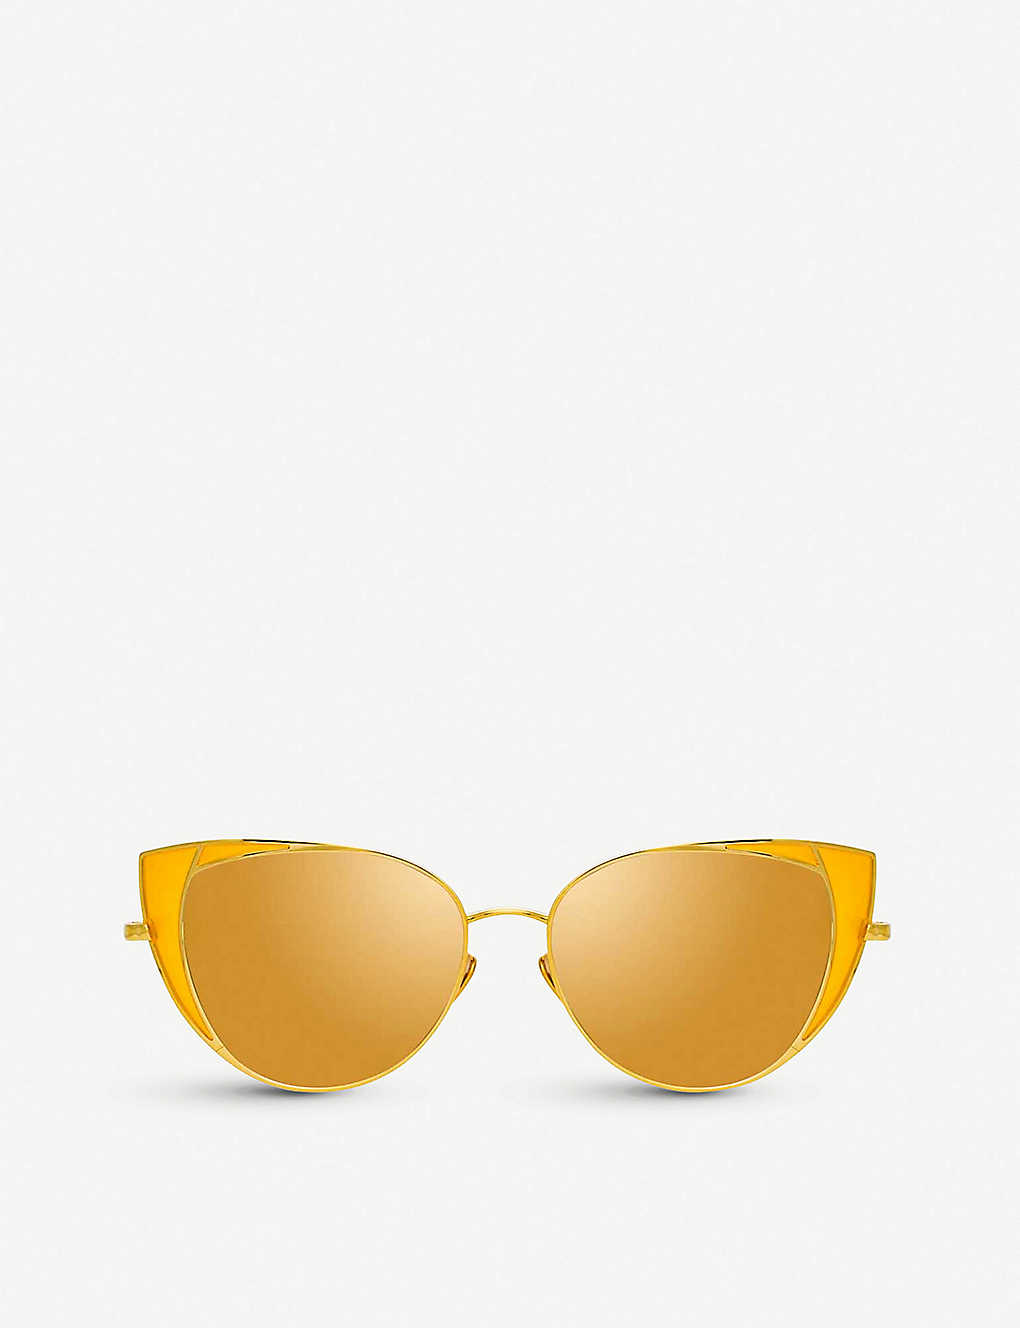 LINDA FARROW: 855 C4 Des Voeux yellow-gold plated titanium cat-eye frame sunglasses